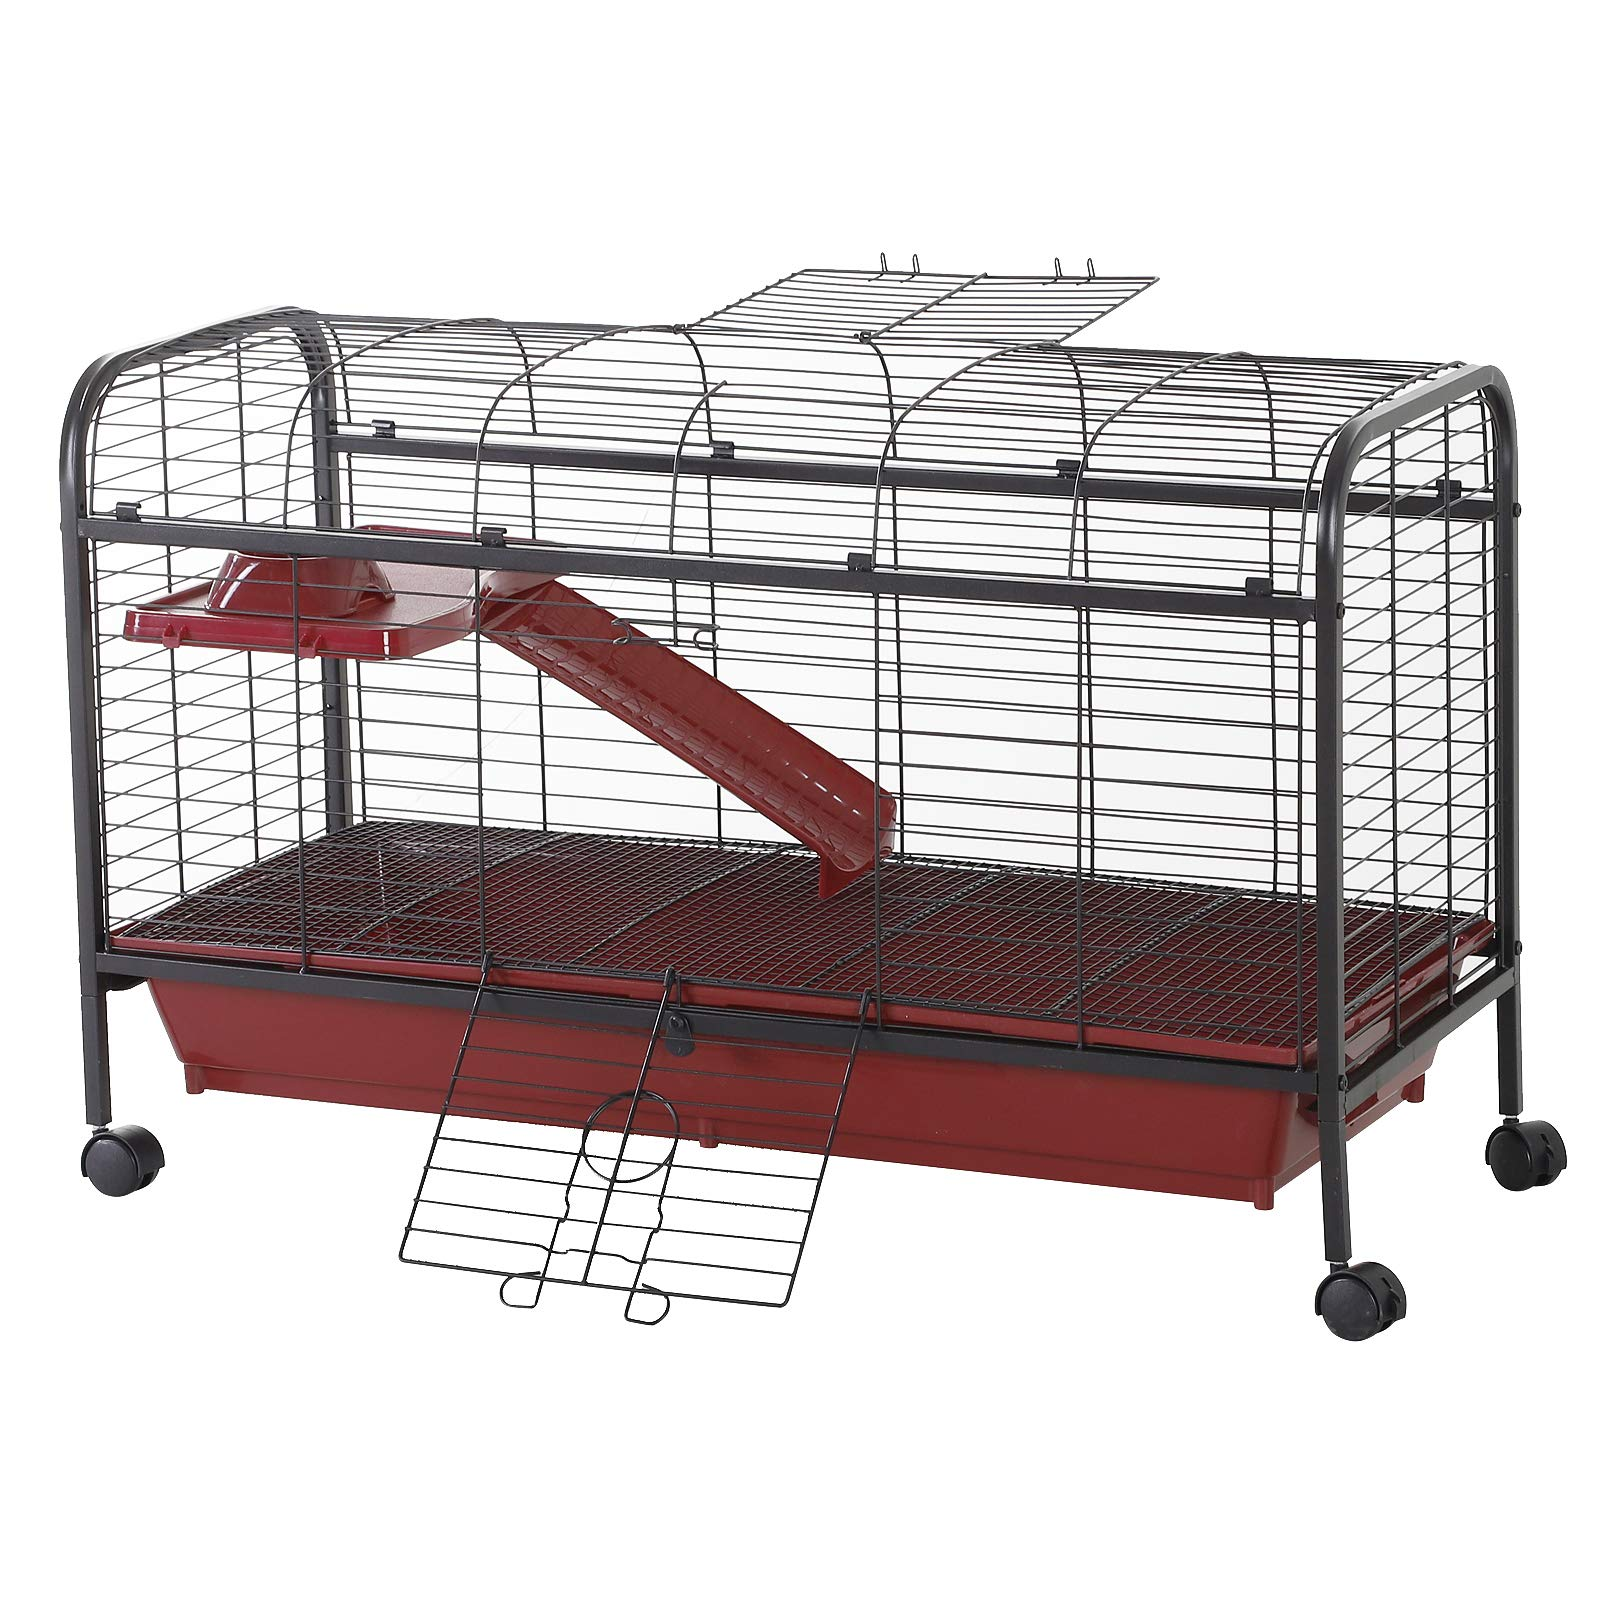 PawHut 42'' Metal Wire Small Animal Pet Cage with Wheels - Red and Black by PawHut